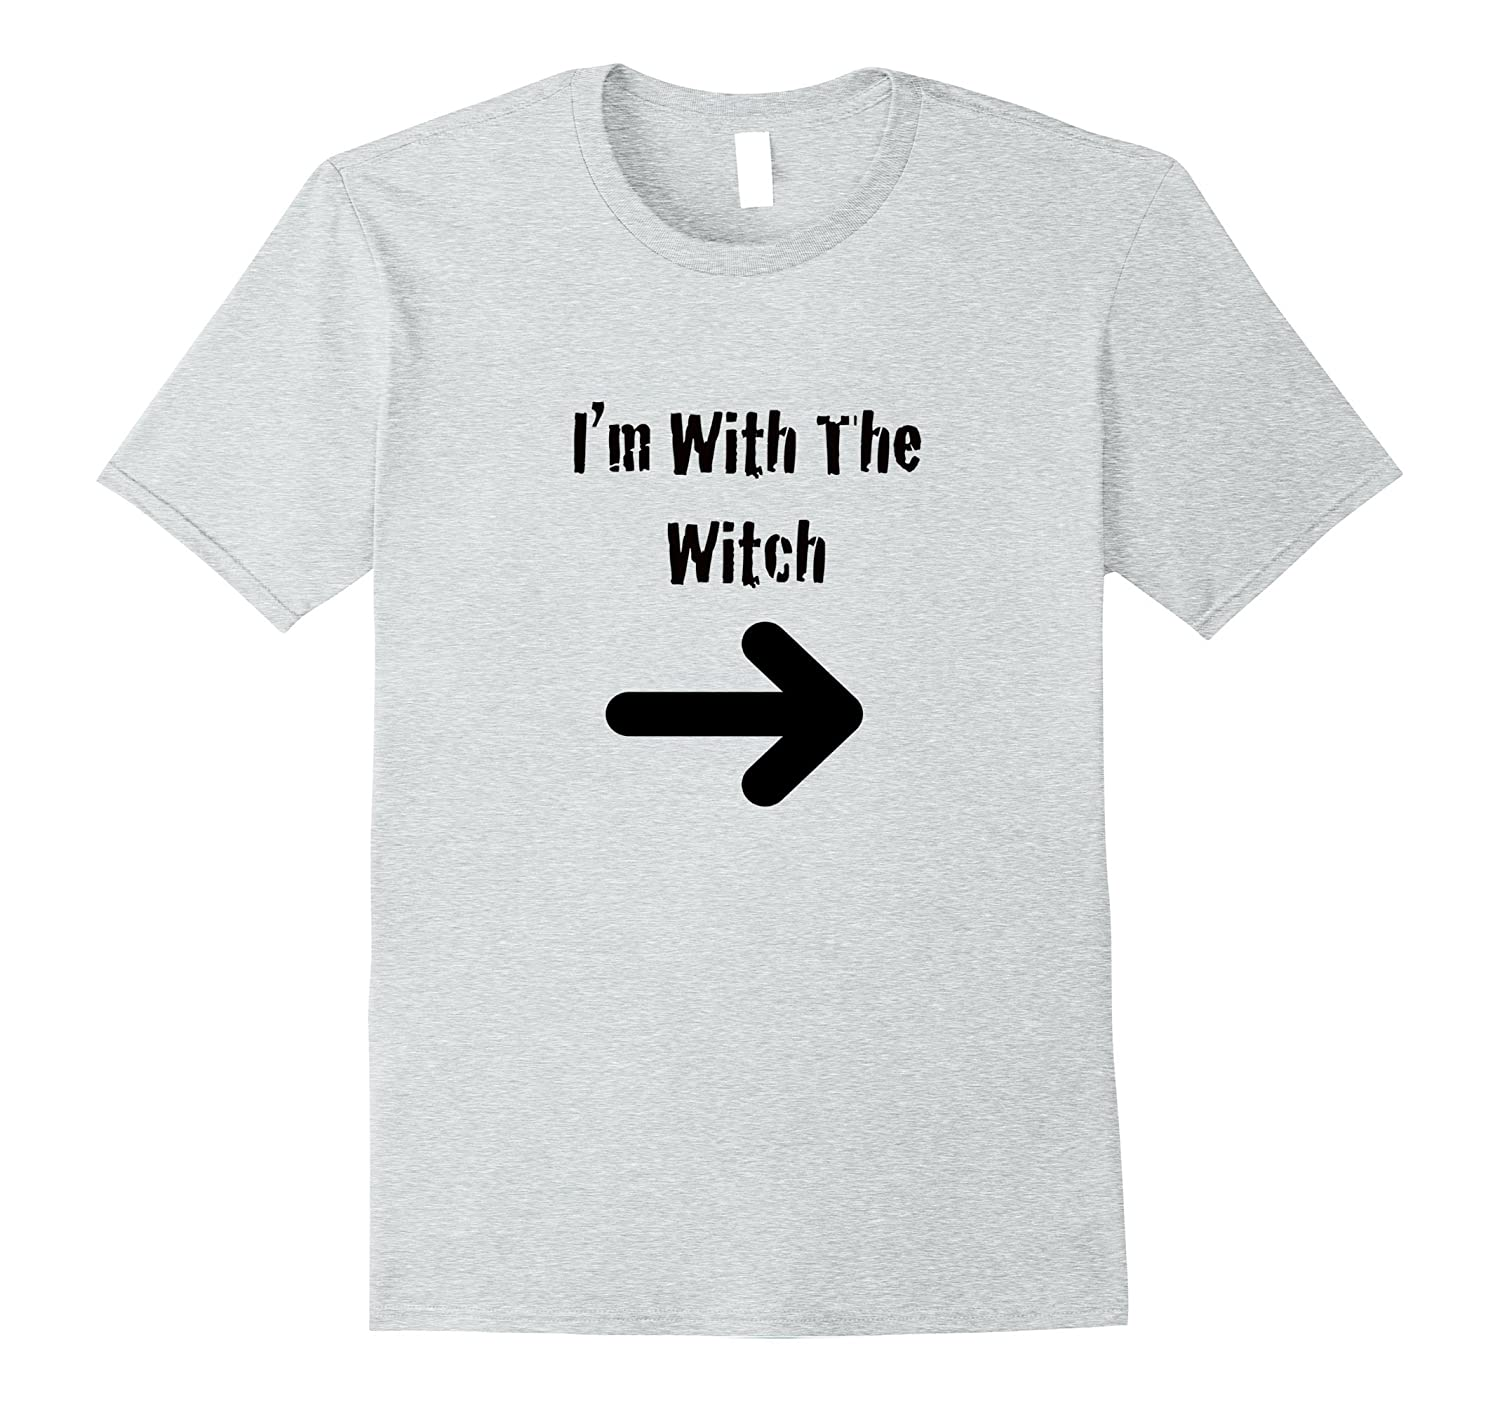 Mens Men's Halloween Couples Costume Shirt I'm With The Witch-T-Shirt